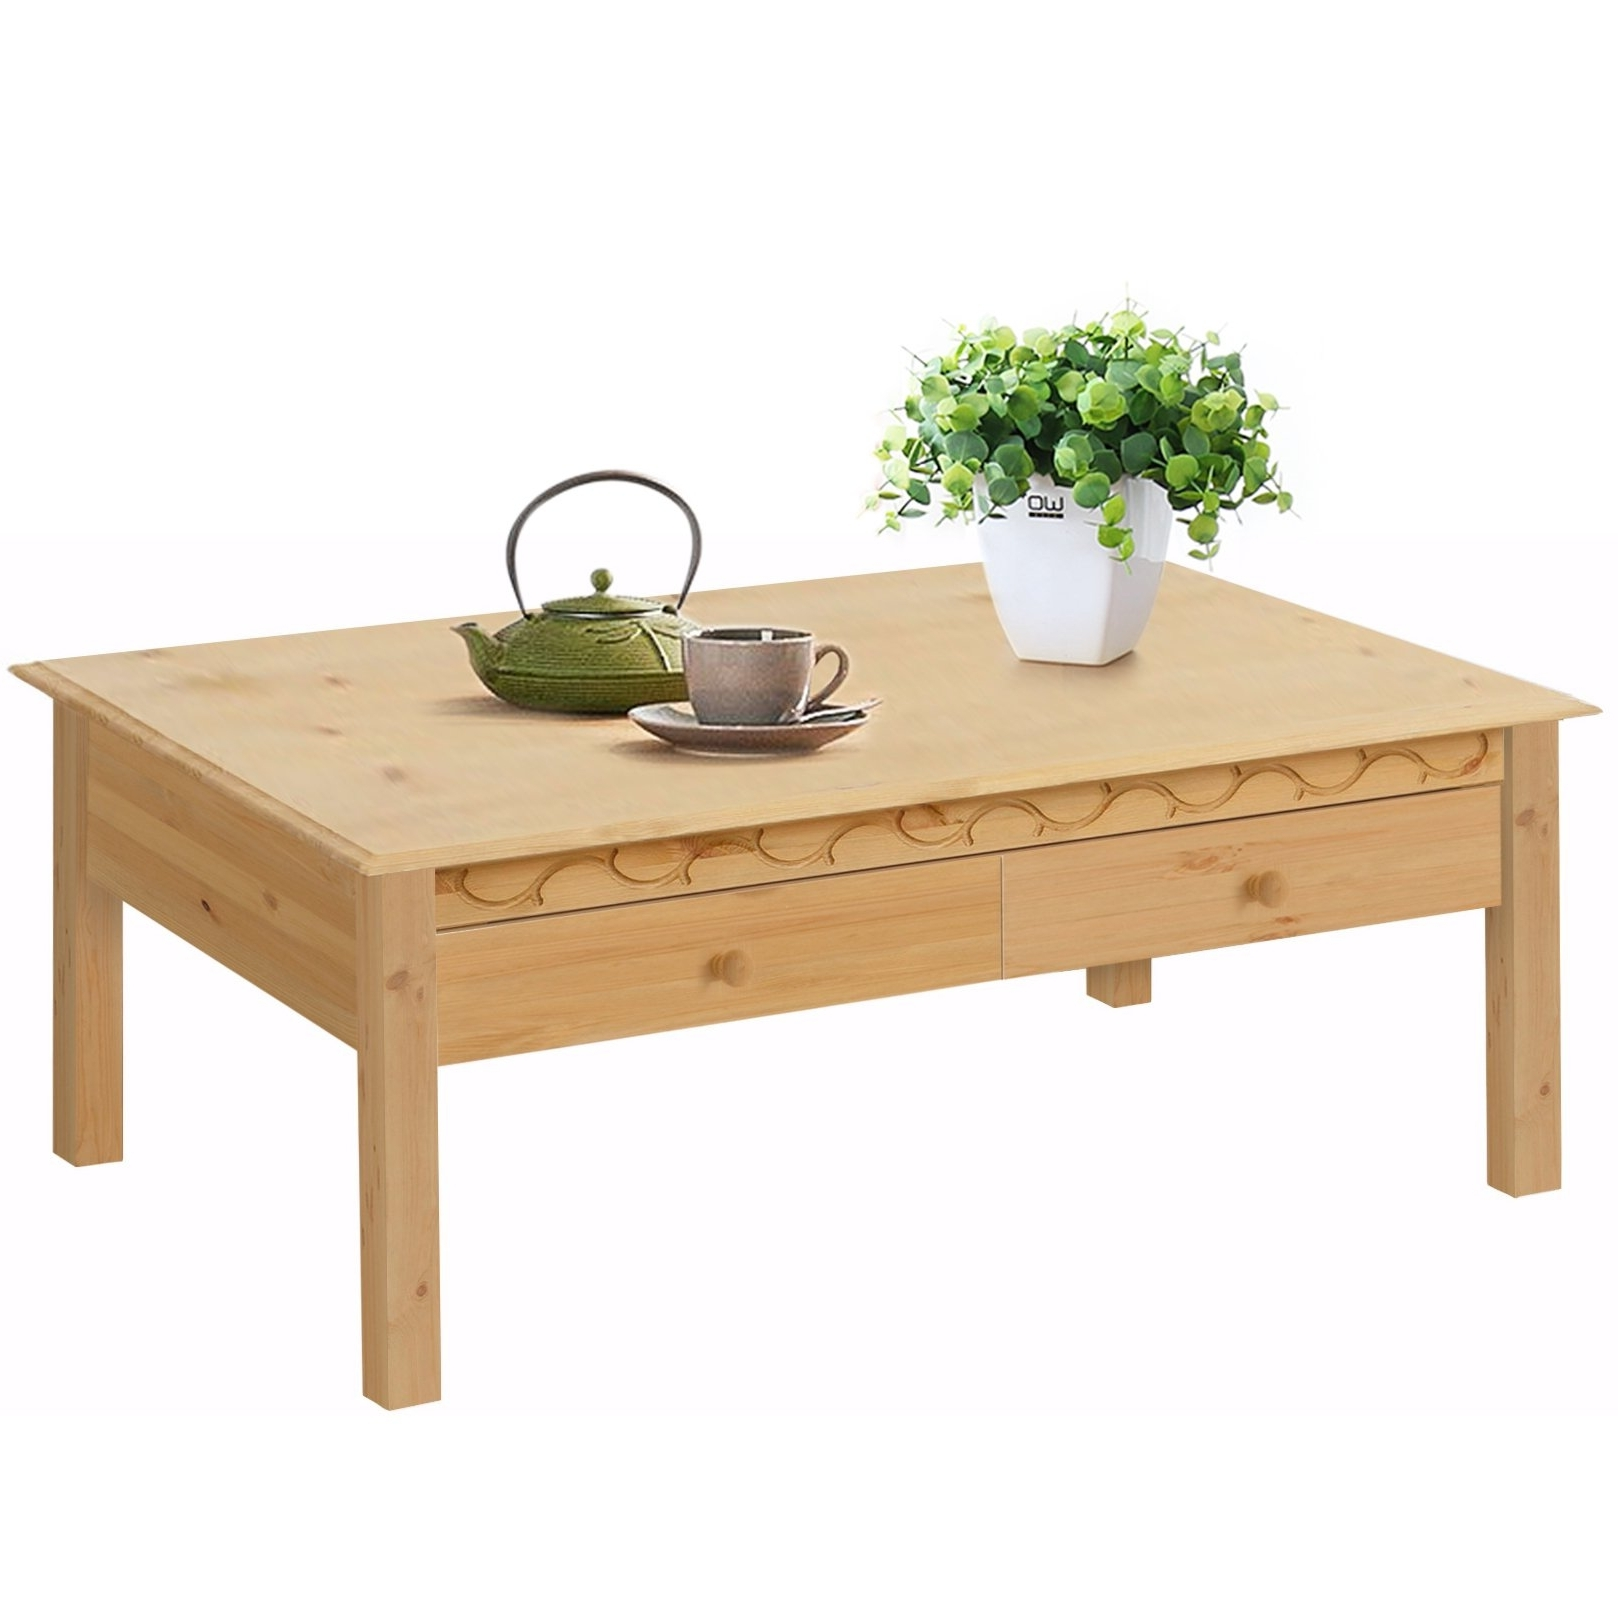 Newest Natural Pine Coffee Tables Intended For Lando 1 Drawer Coffee Table, Solid Pine, Natural – Free Shipping (Gallery 10 of 20)